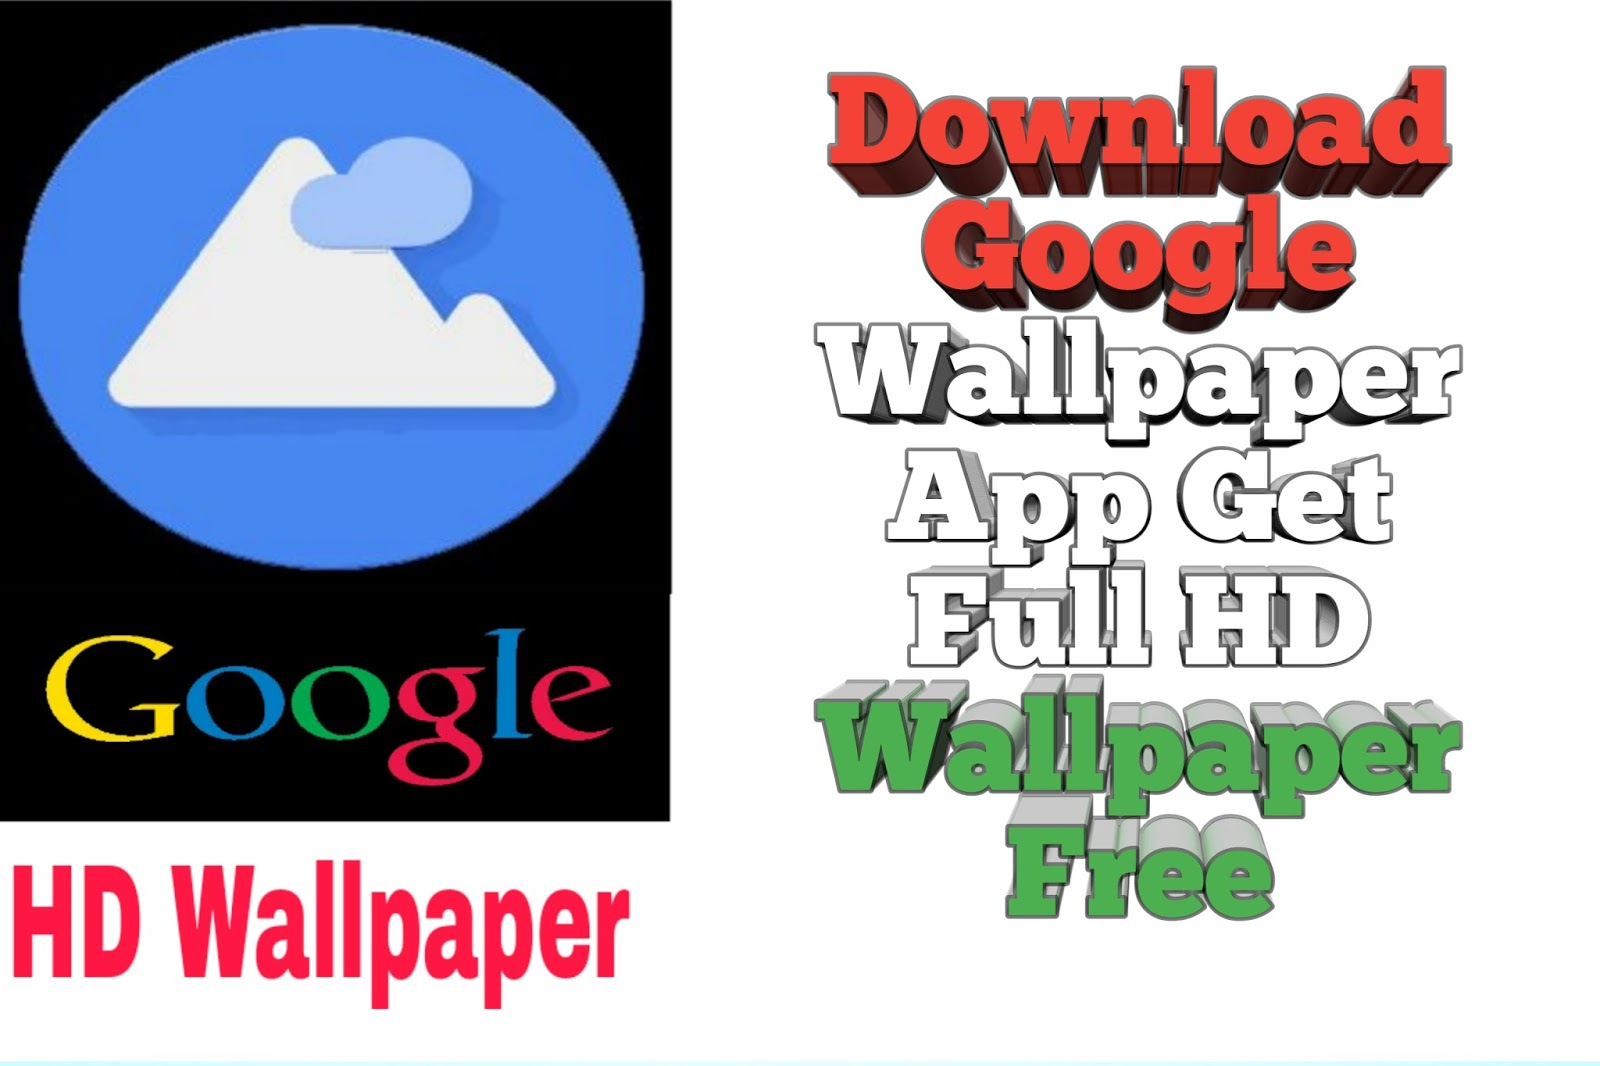 How to install Google wallpaper app